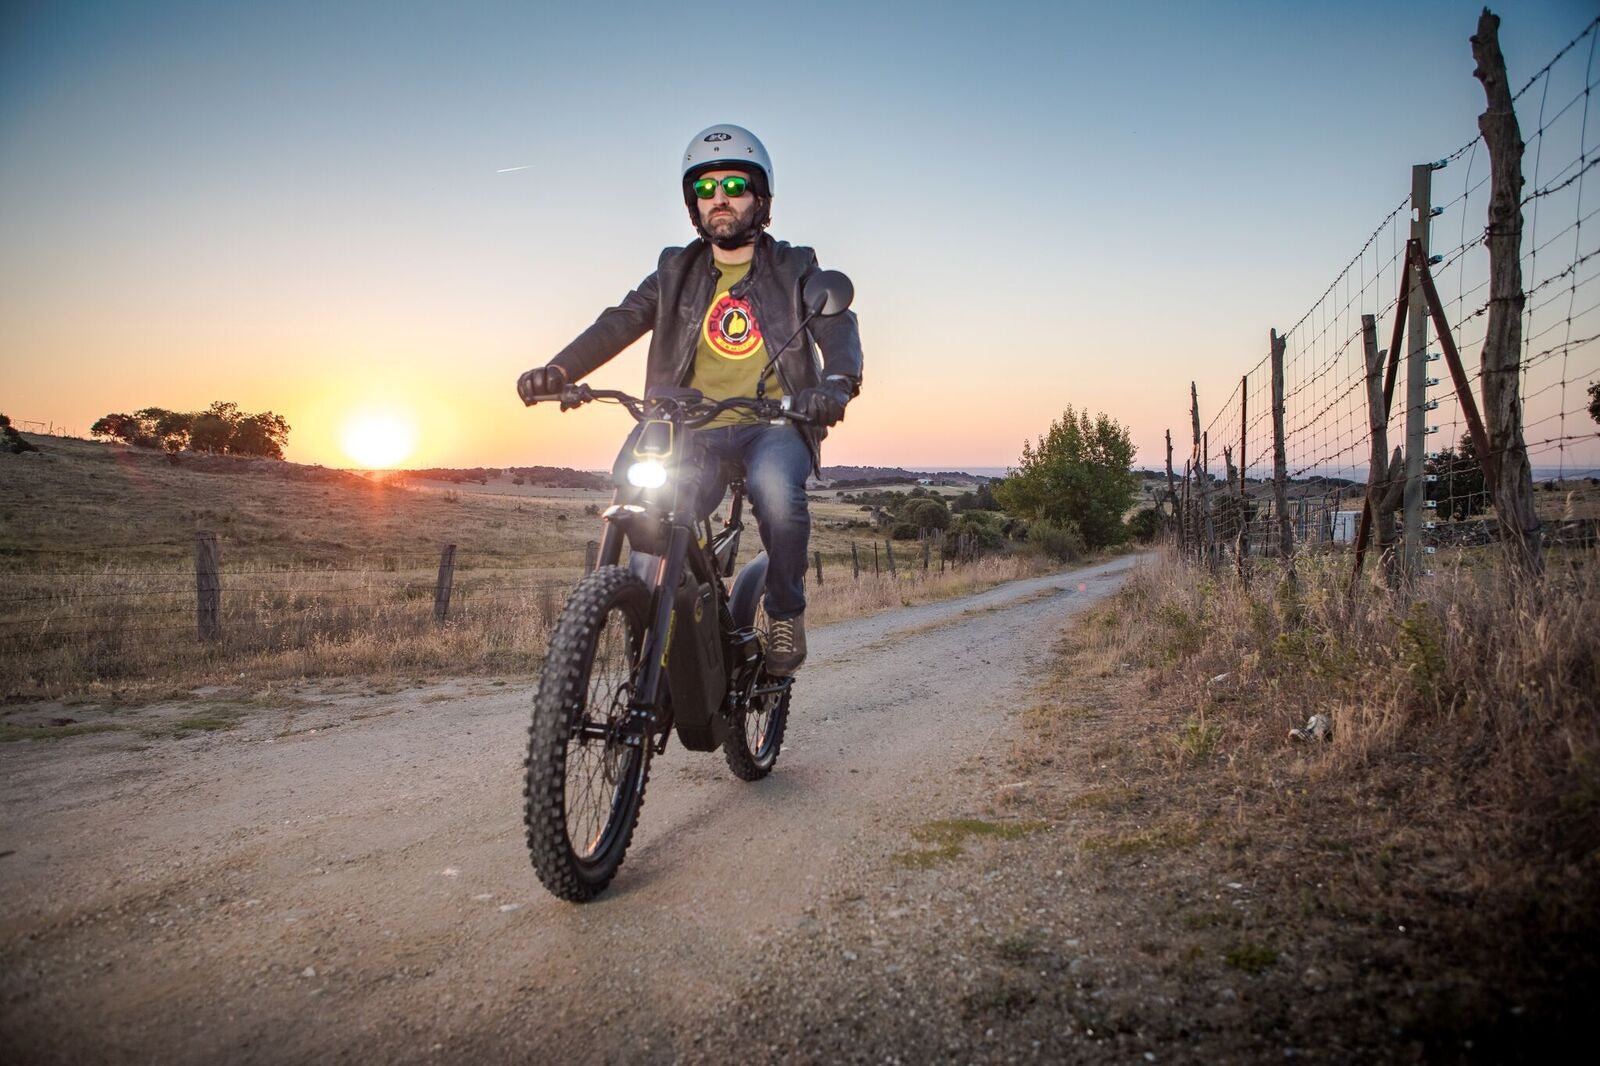 Bultaco Brinco C Restyle Night Time Shoot 6